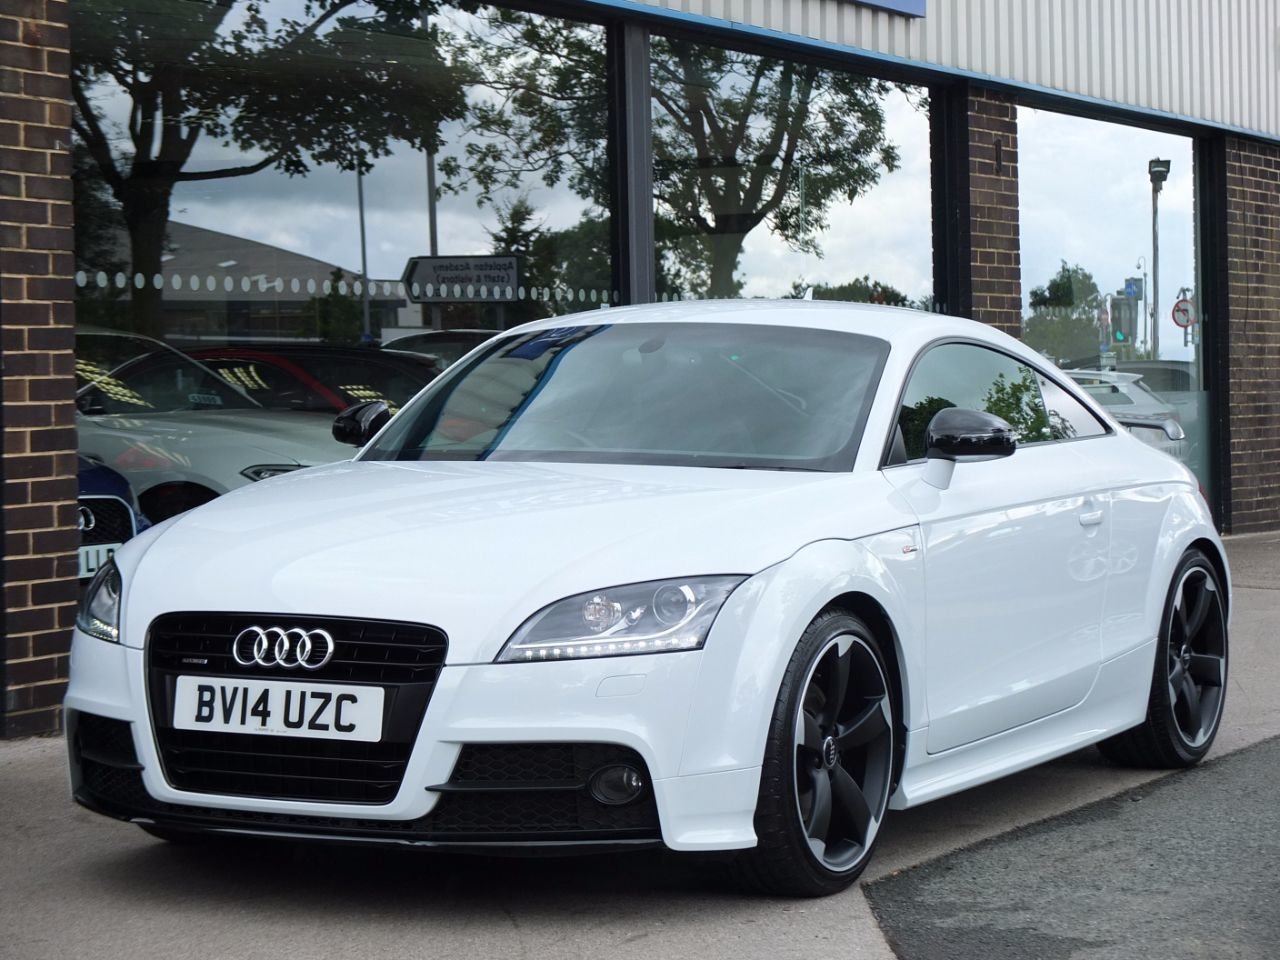 Audi TT 2.0T FSI quattro Black Edition S tronic Amplified Pack Coupe Petrol Glacier White MetallicAudi TT 2.0T FSI quattro Black Edition S tronic Amplified Pack Coupe Petrol Glacier White Metallic at fa Roper Ltd Bradford